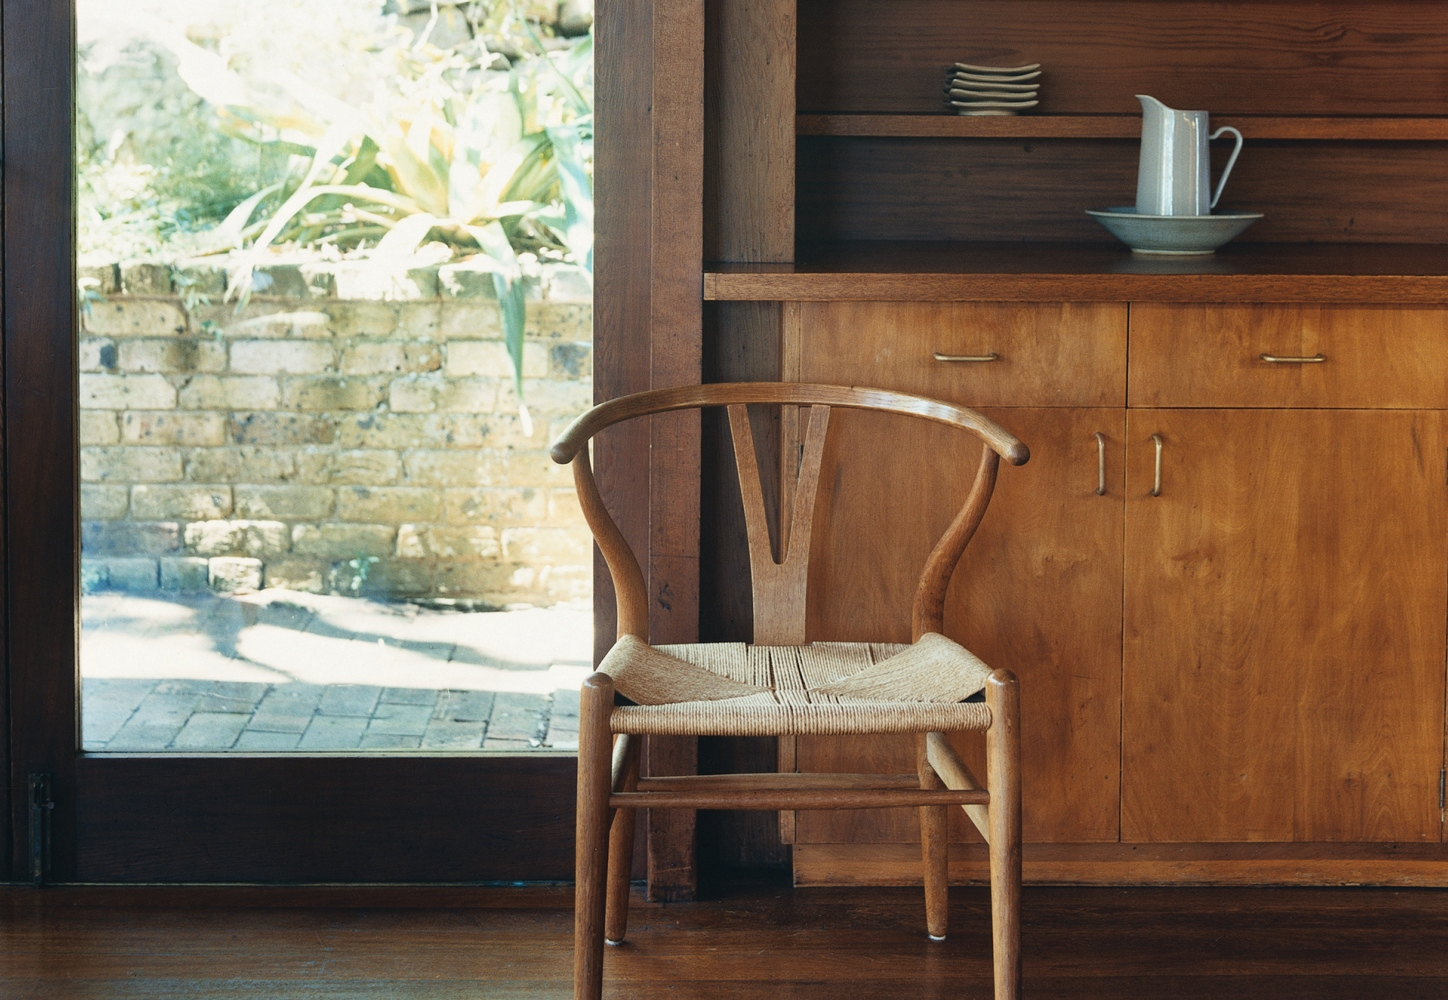 Image of timber chair and cupboards inside Marchall House